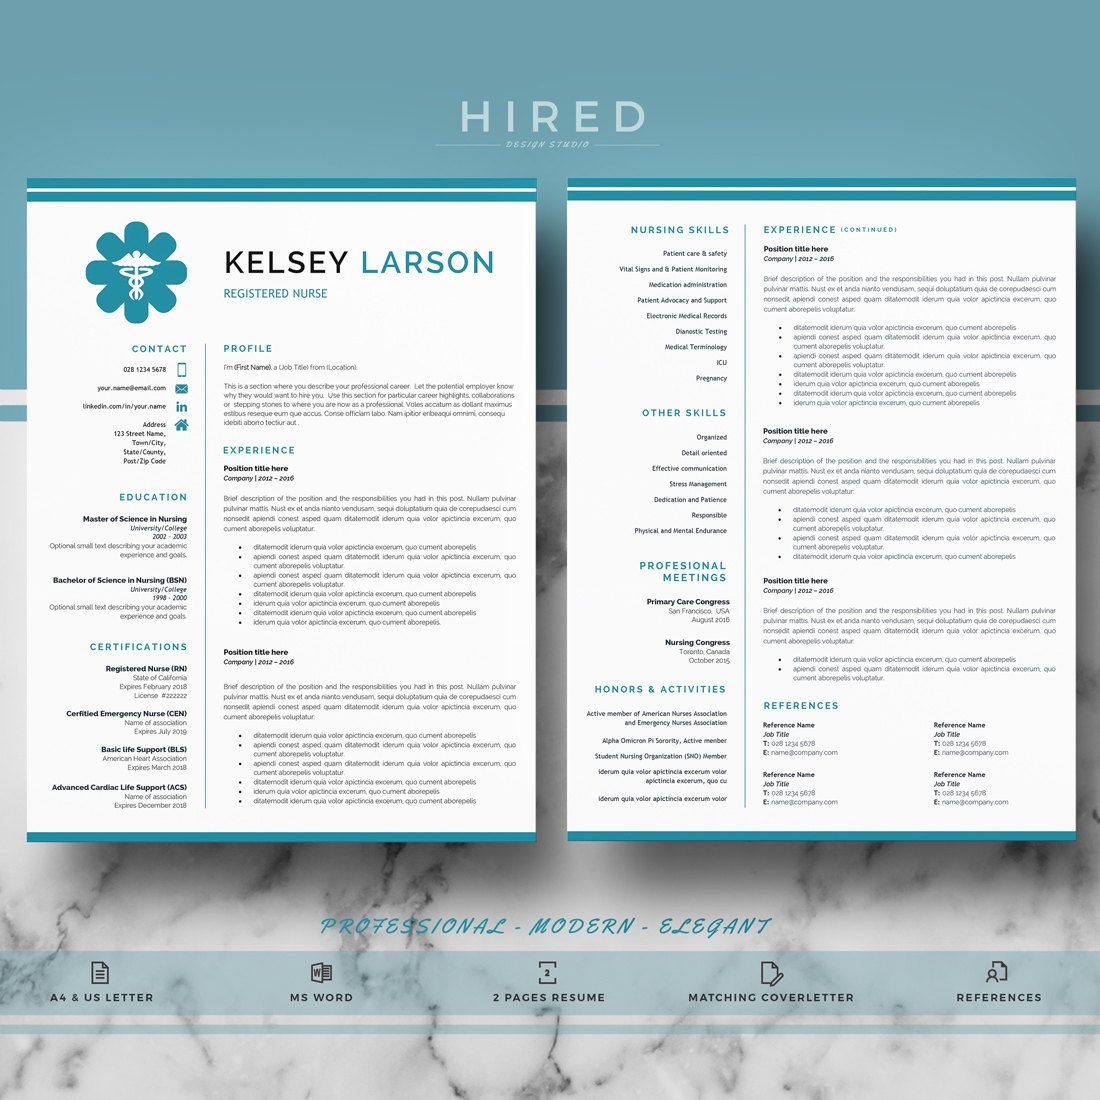 Nurse Resume Template Doctor Resume Template For Ms Word And Etsy Nursing Resume Template Medical Resume Template Nursing Resume Medical resume template microsoft word